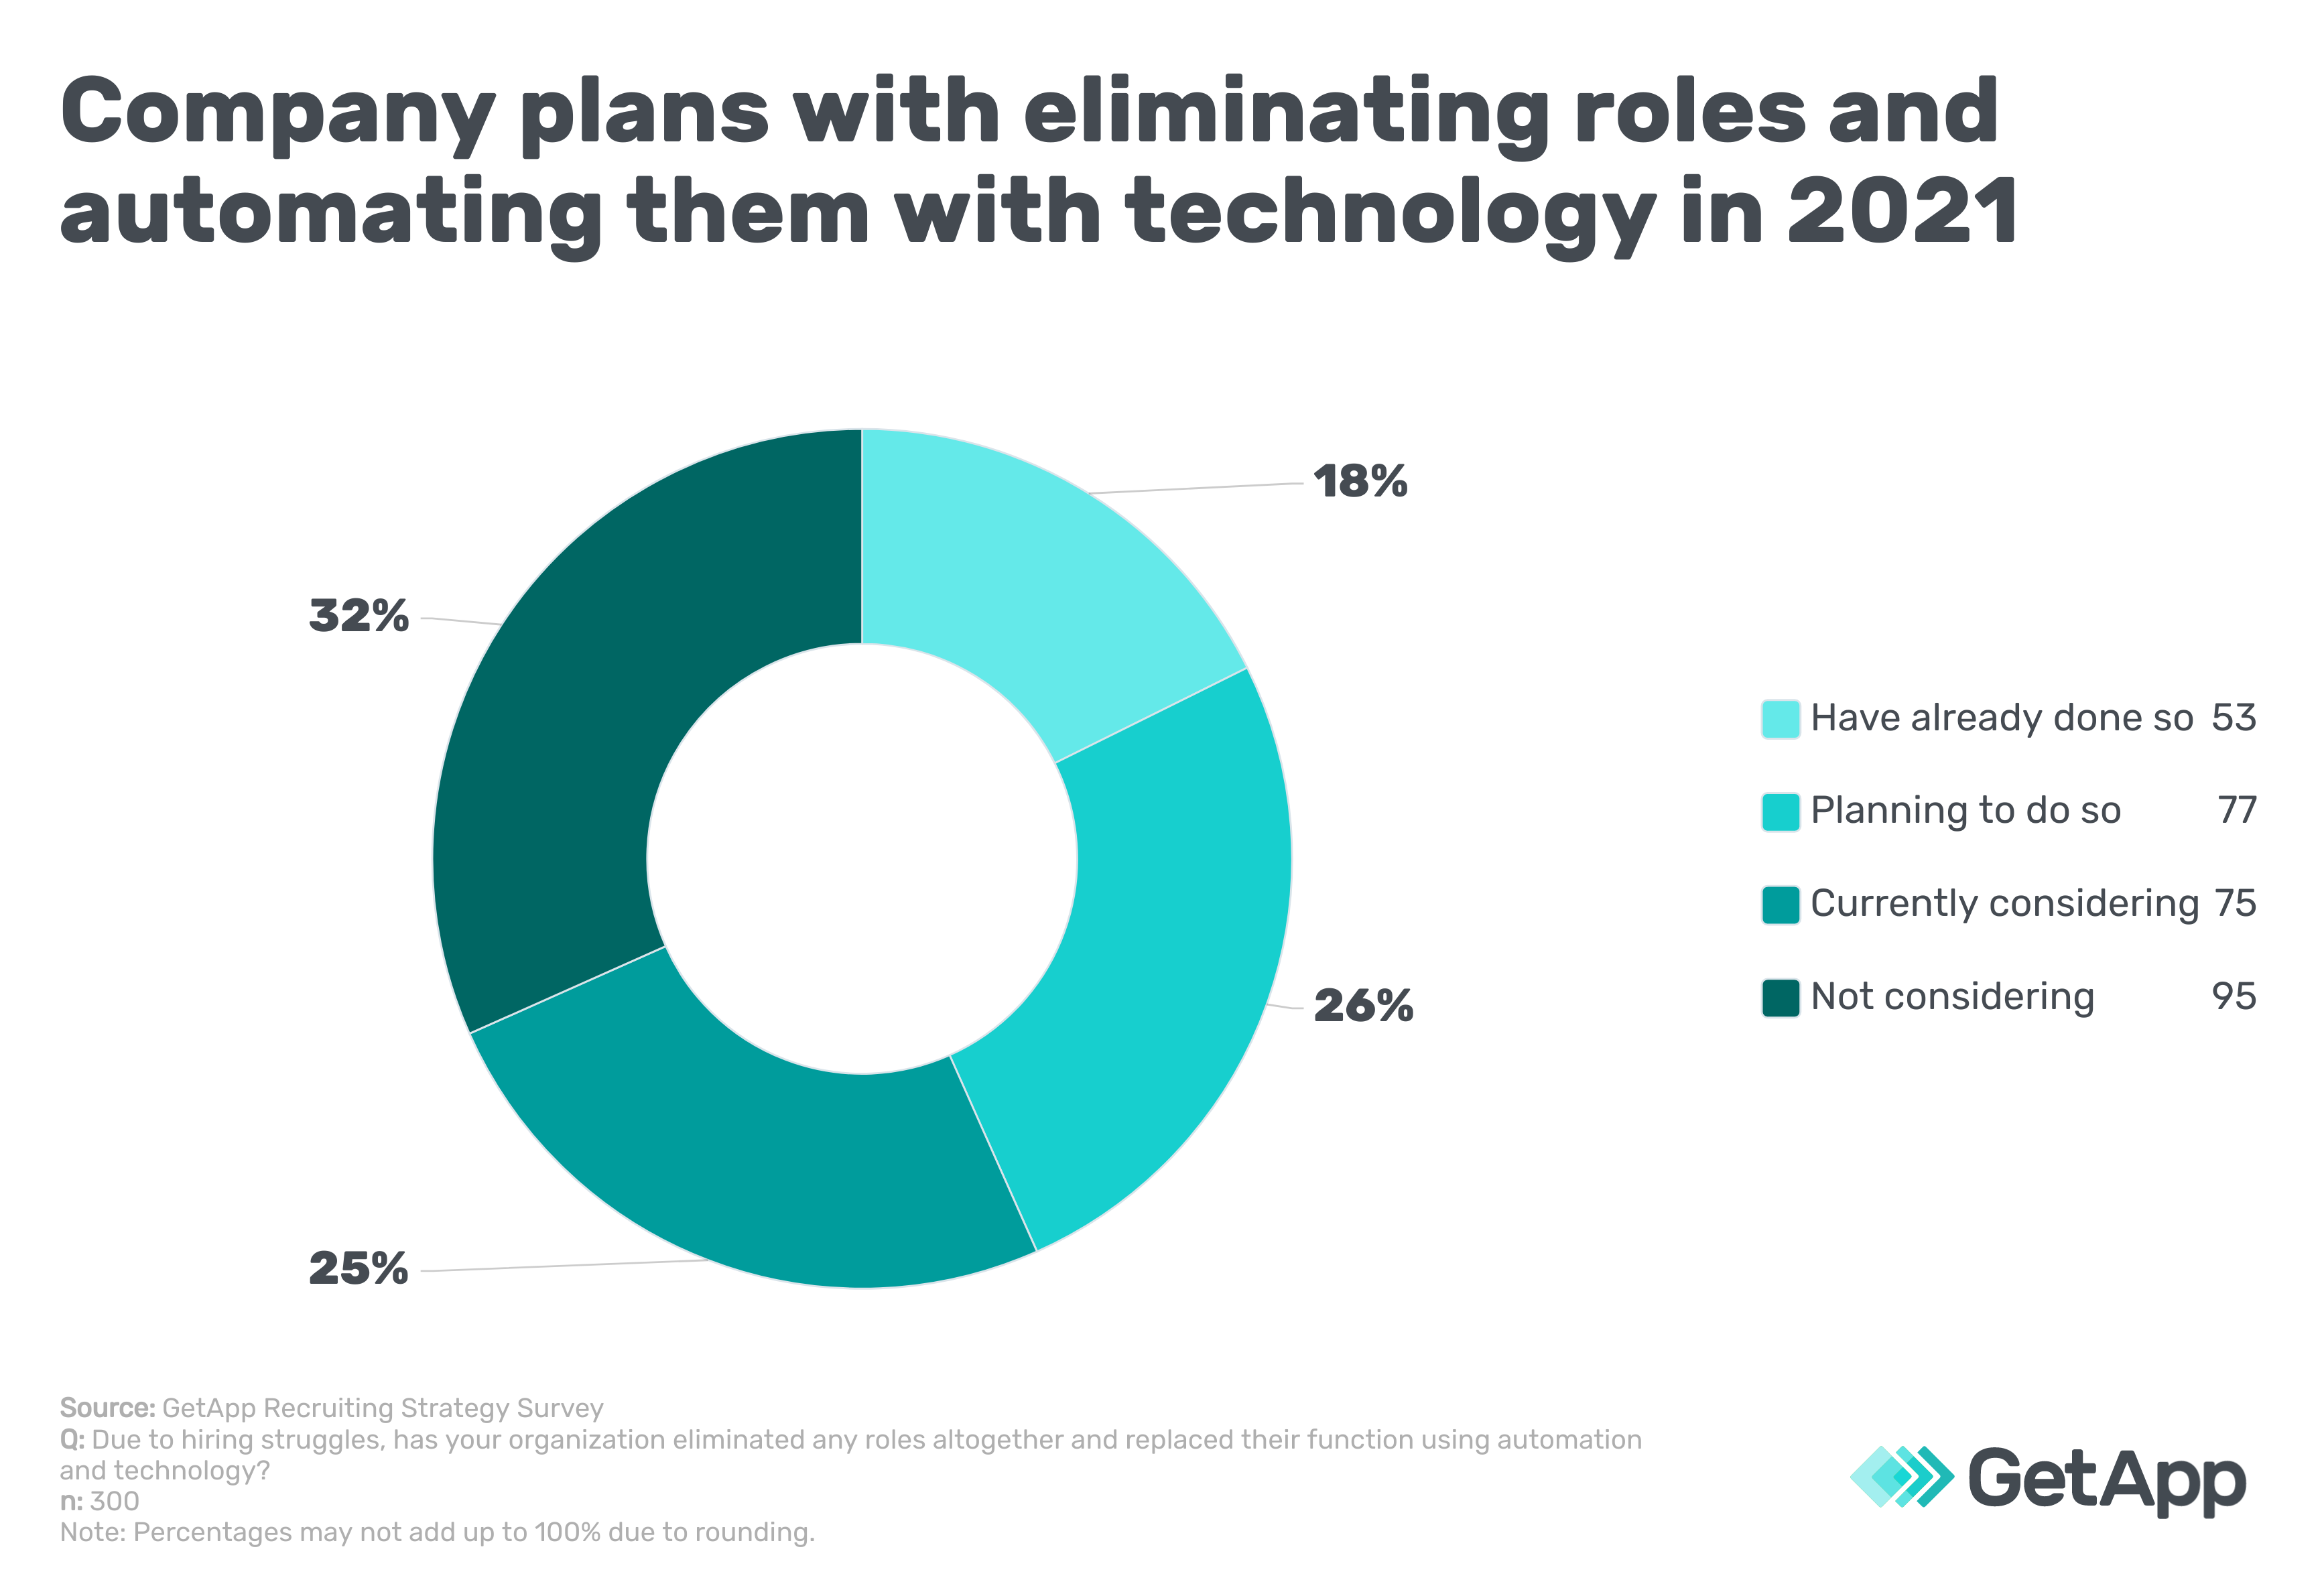 Company plans with eliminating roles and automating them with technology in 2021